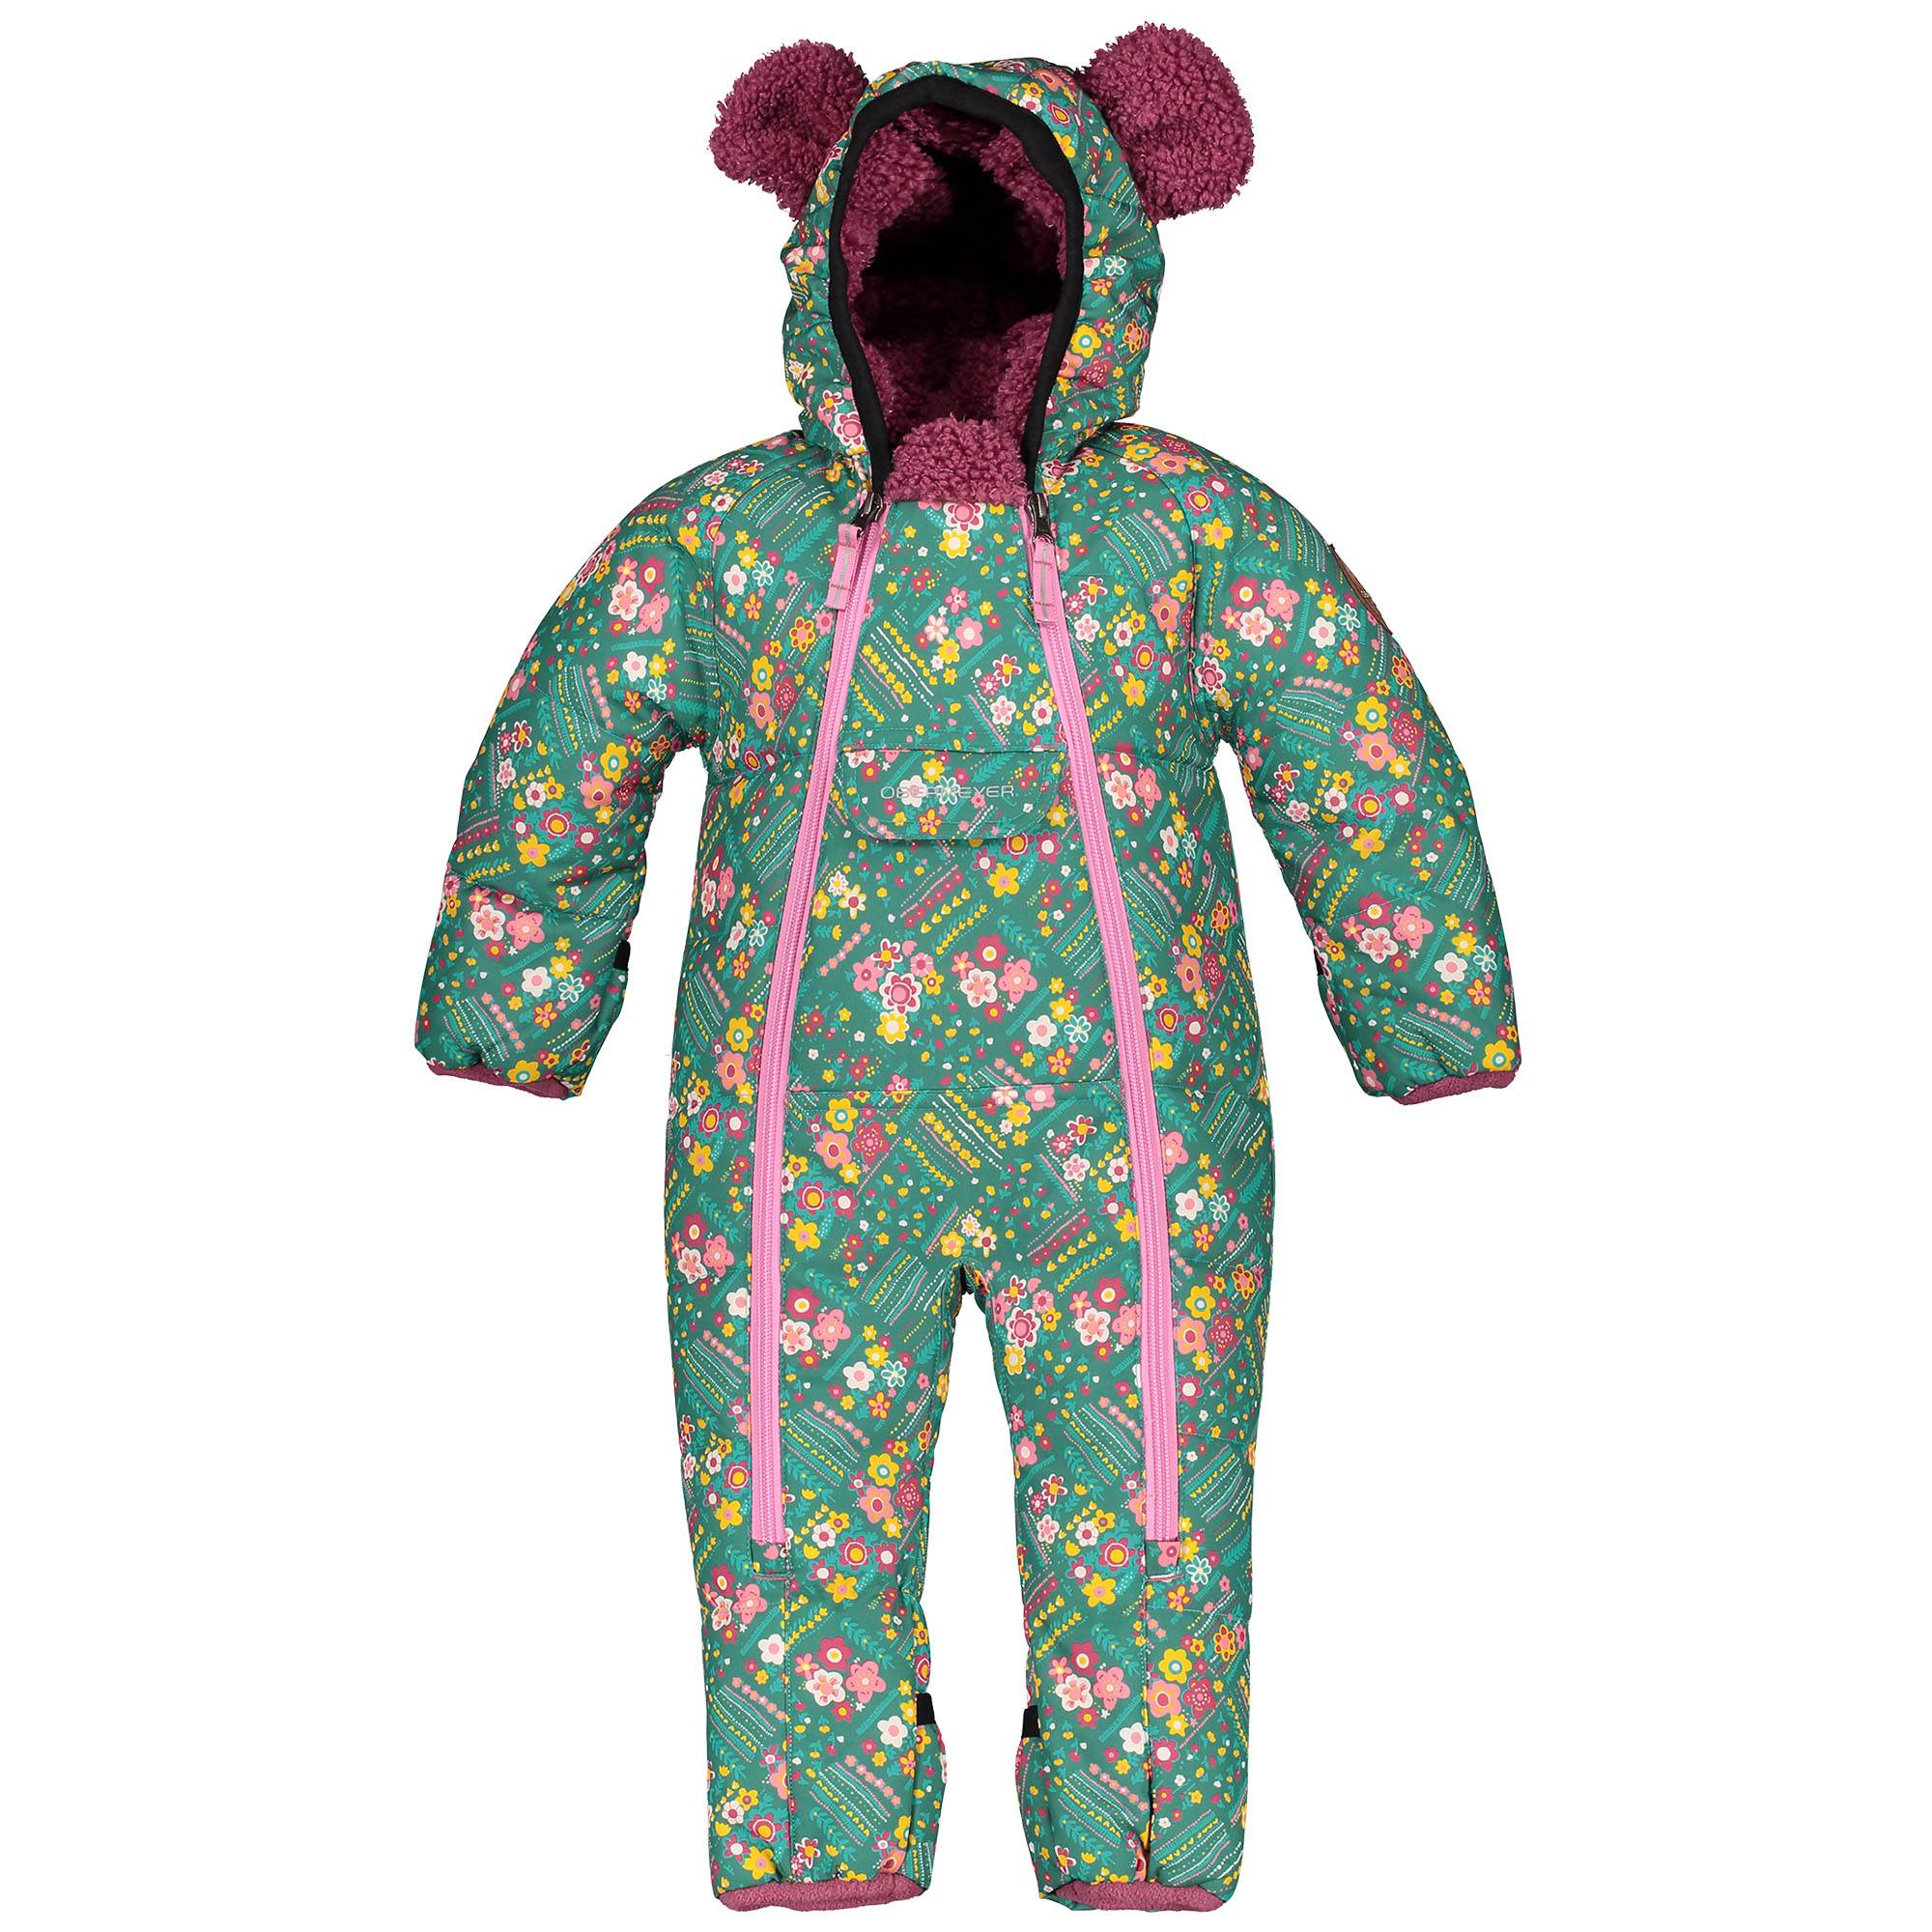 Obermeyer Girl's Kleine Bunting Infant Suit  - Garden Patch - Size: 12MO-18MO